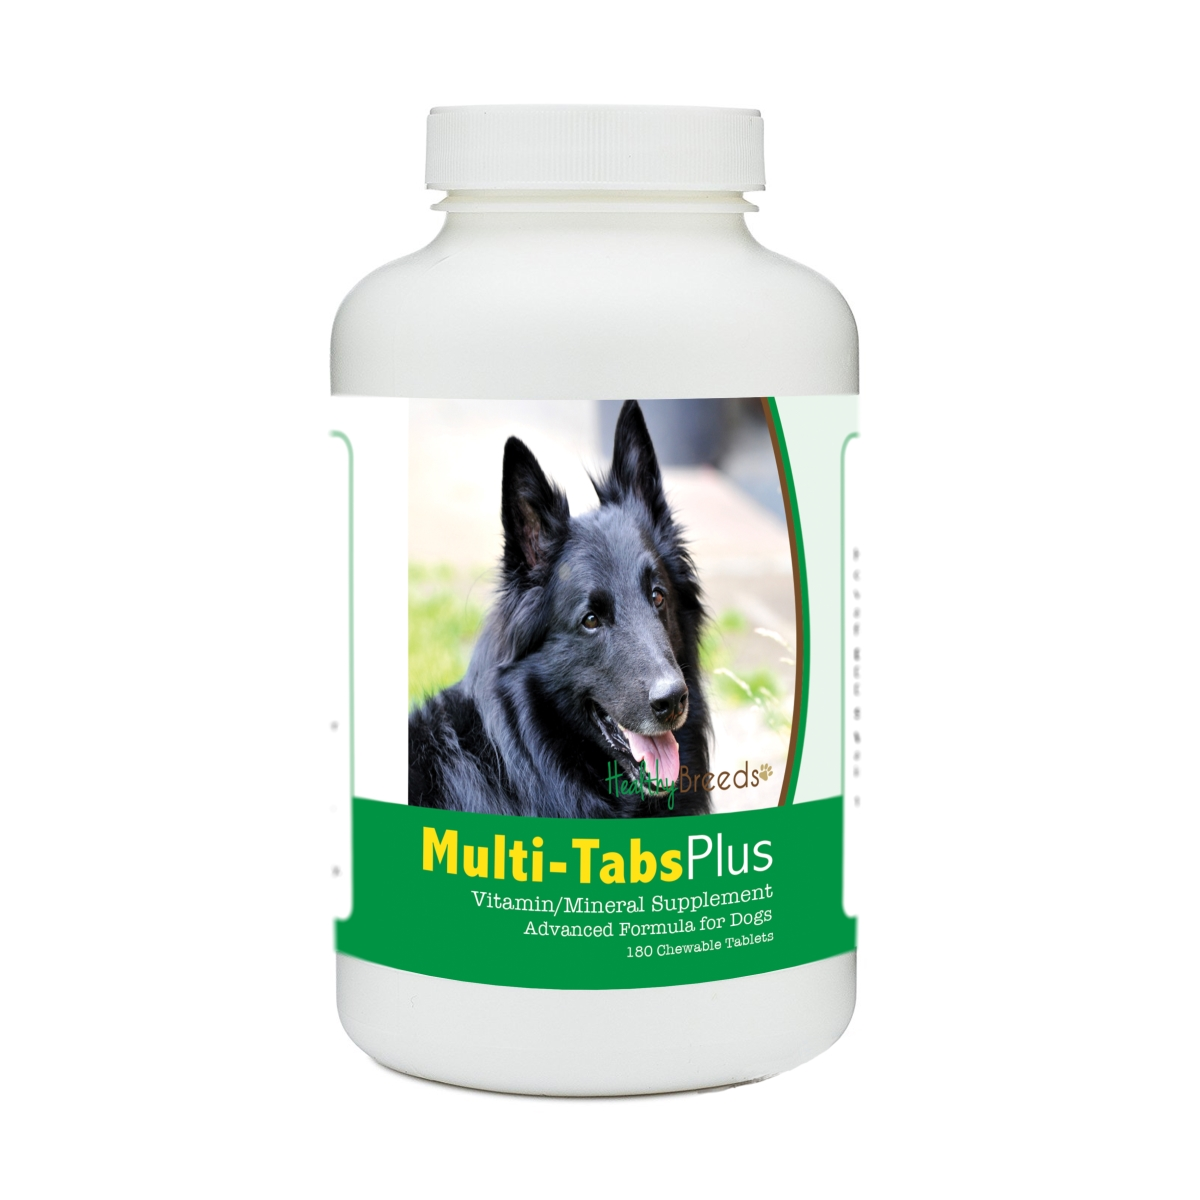 Healthy Breeds 840235179764 Belgian Sheepdog Multi-Tabs Plus Chewable Tablets - 180 Count